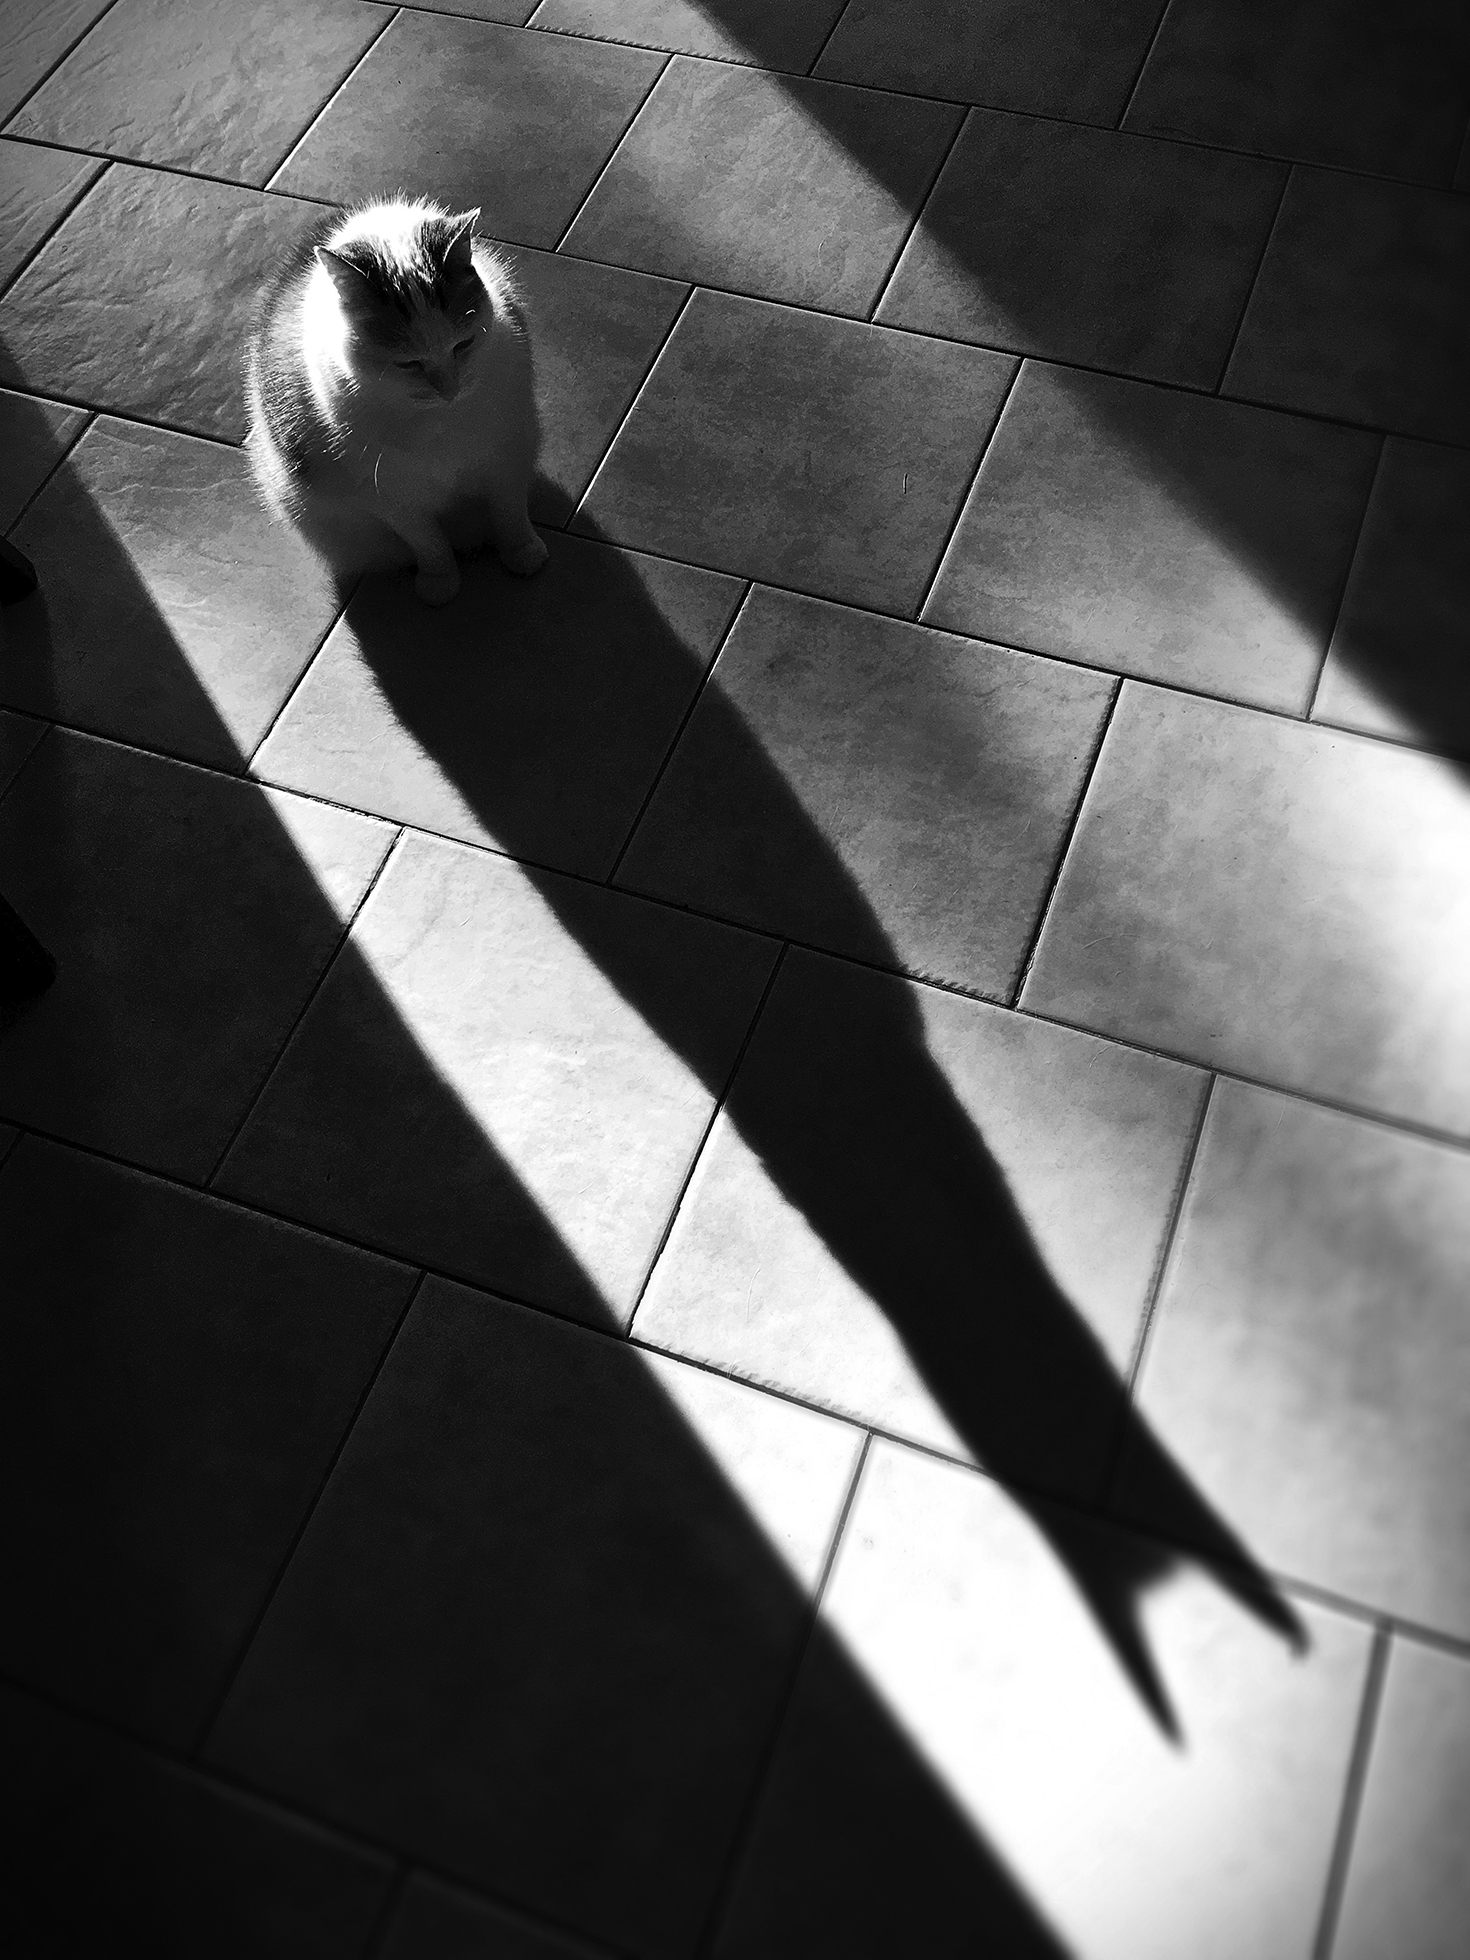 A cat sits in the middle of a sunbeam. Its shadow looms large in front of it.